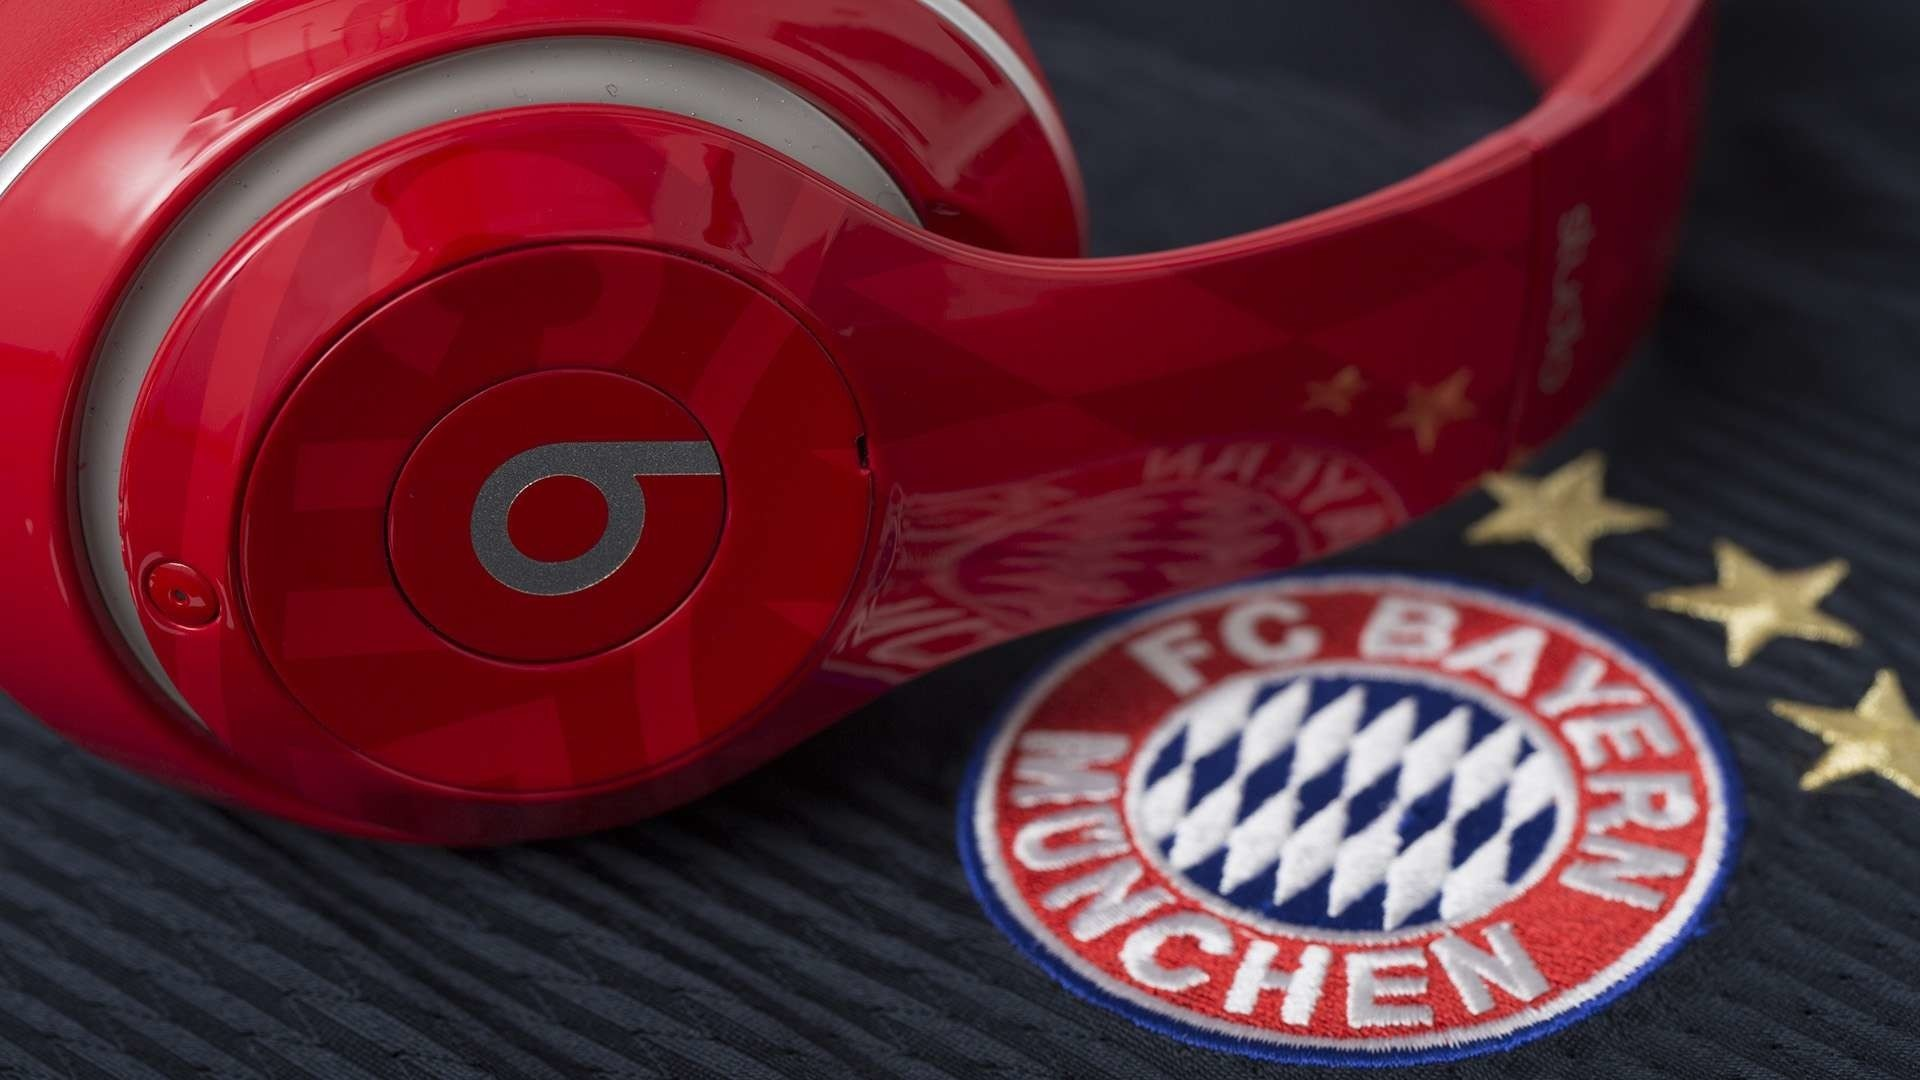 Bayern Munich free download wallpaper